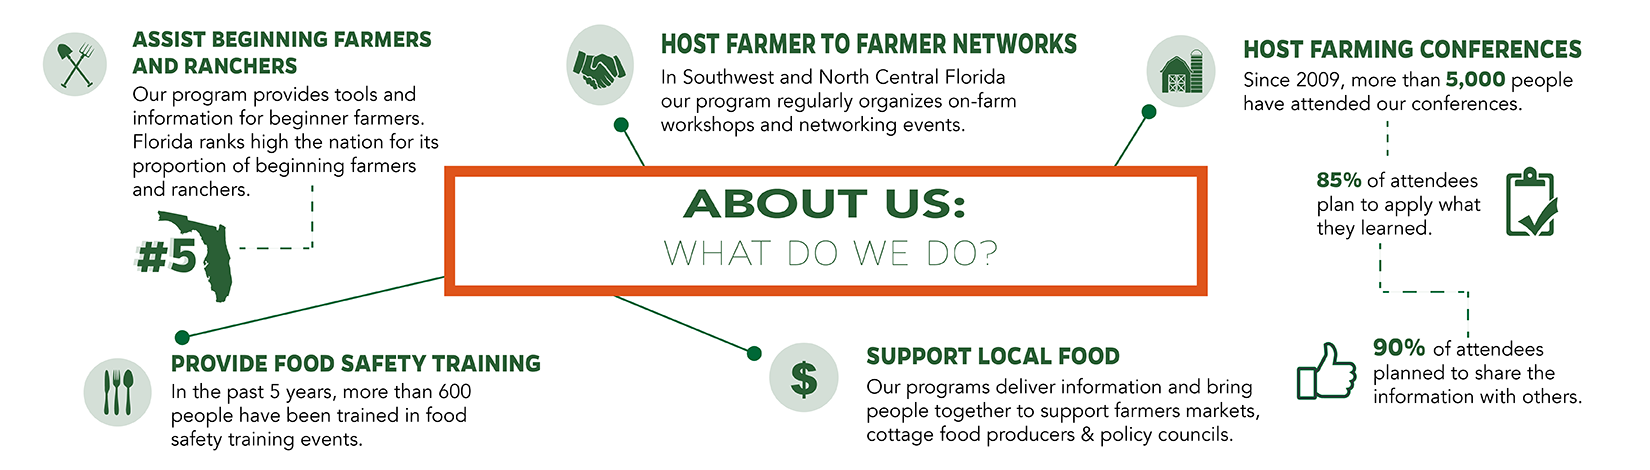 What do we do: 1- Assist beginning farmers and ranchers 2- Host farmer-to-farmer networks 3- Host farming conferences 4- Provide food safety training 5- Support local food